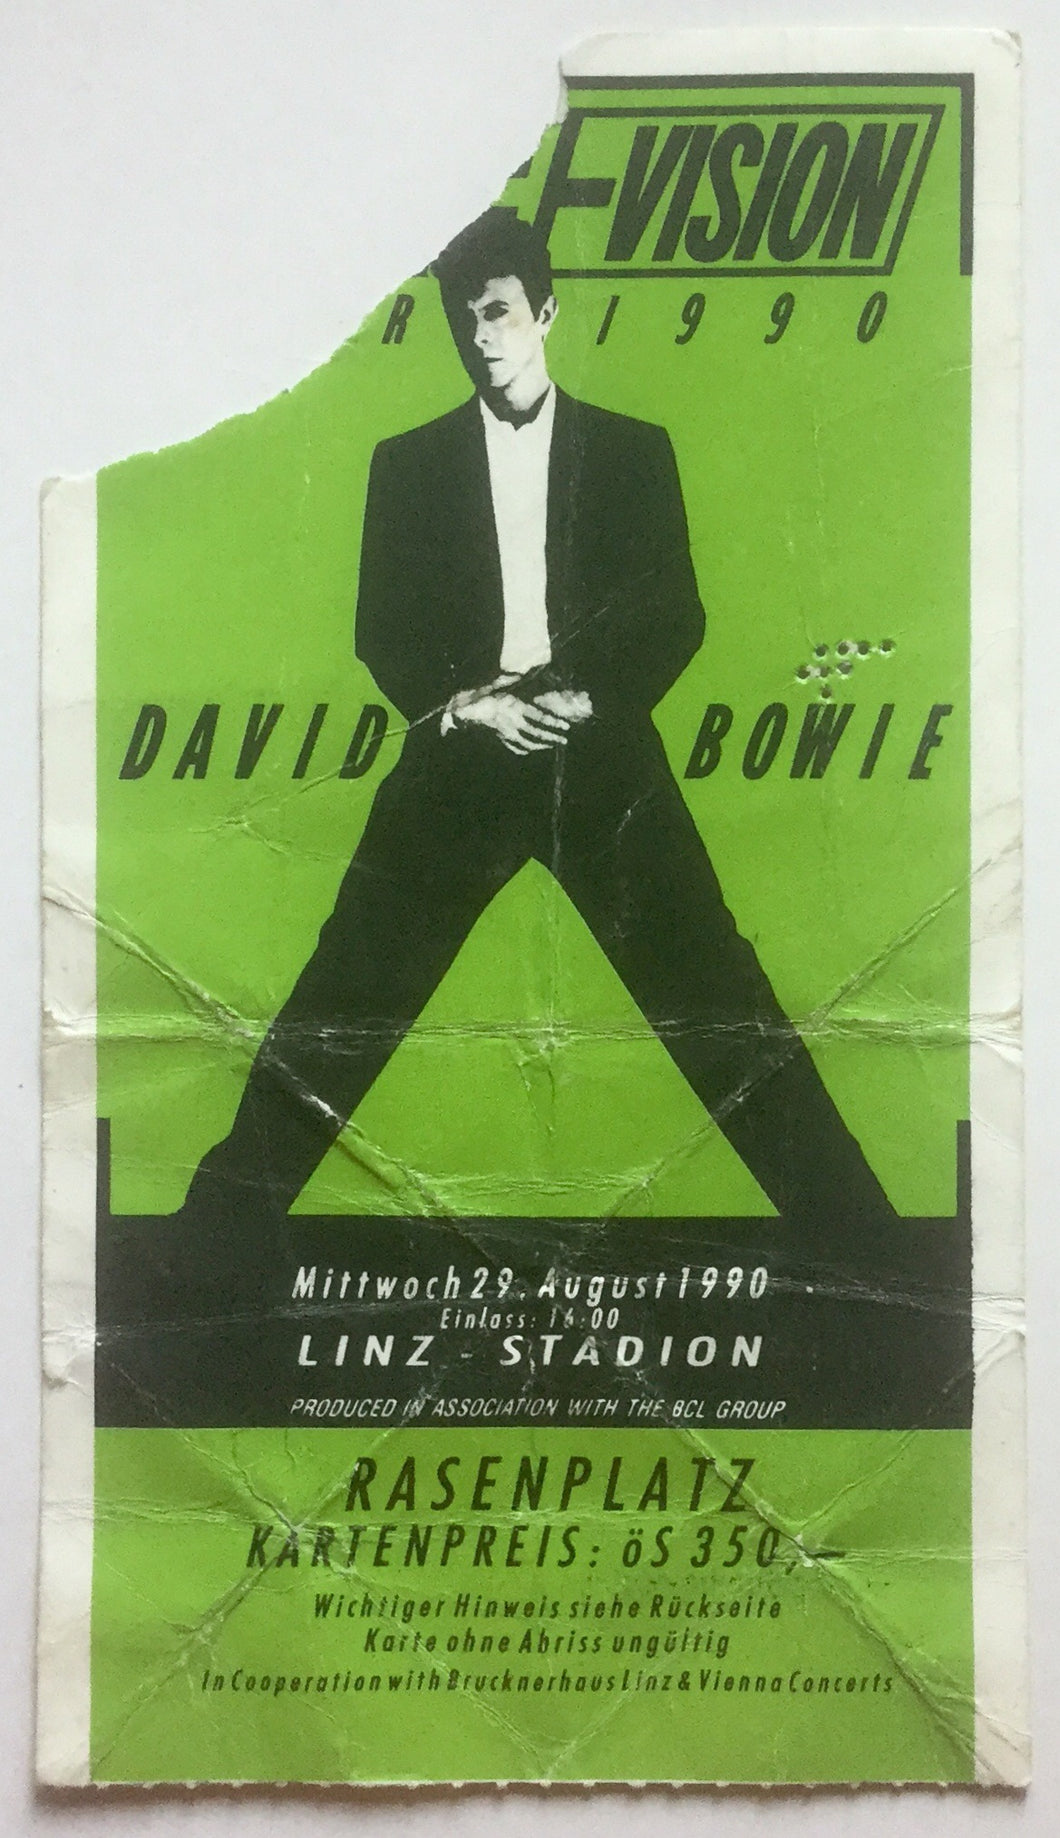 David Bowie Original Used Concert Ticket Linz Stadion 29th Aug 1990